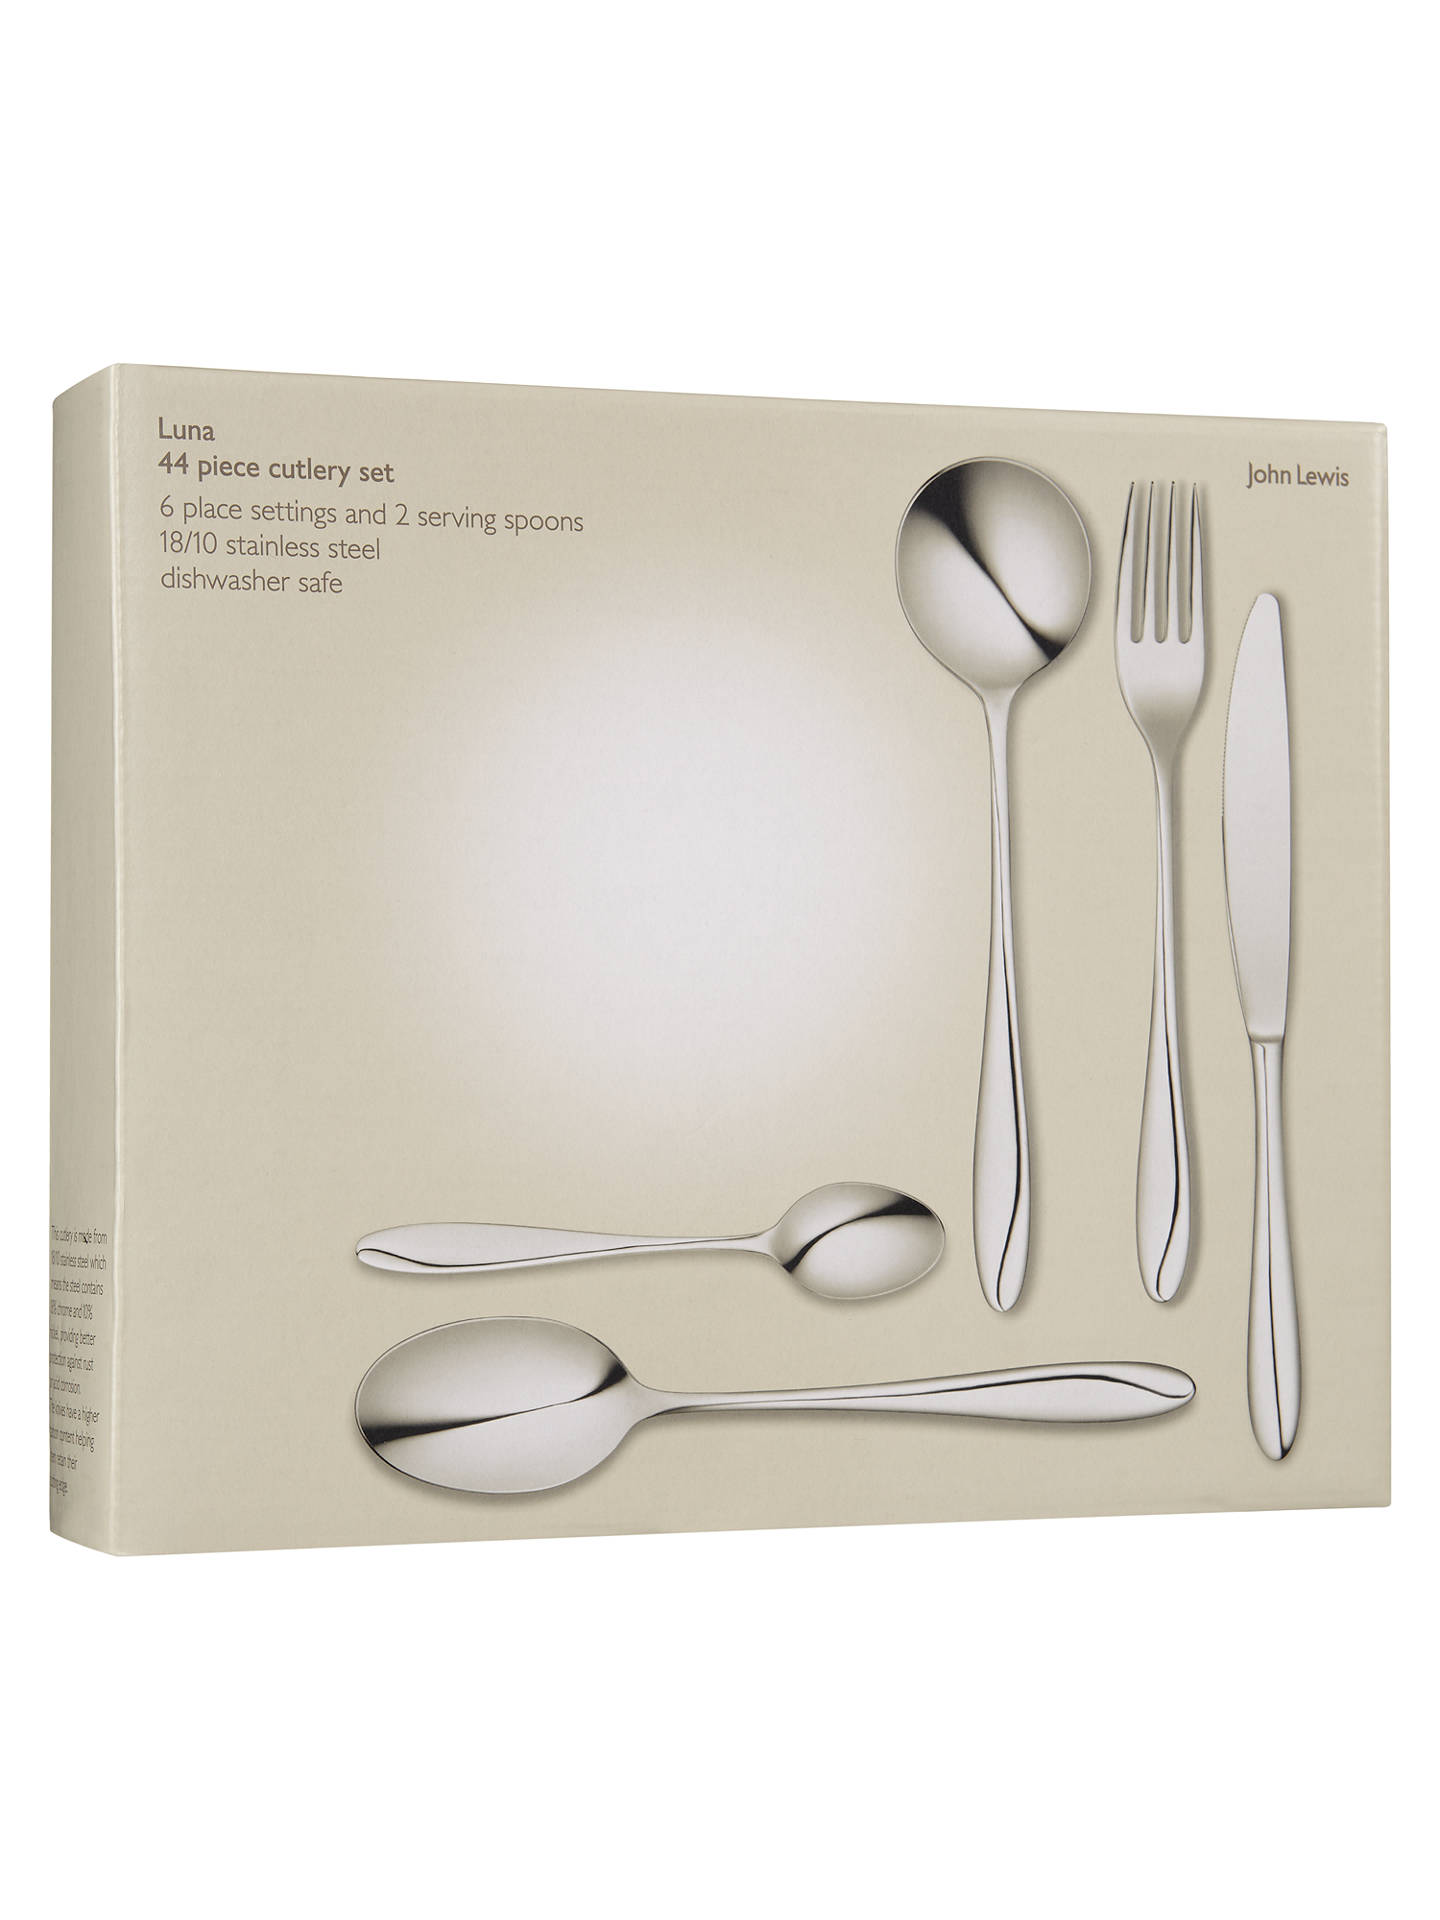 BuyJohn Lewis & Partners Luna Cutlery Set, 44 Piece Online at johnlewis.com